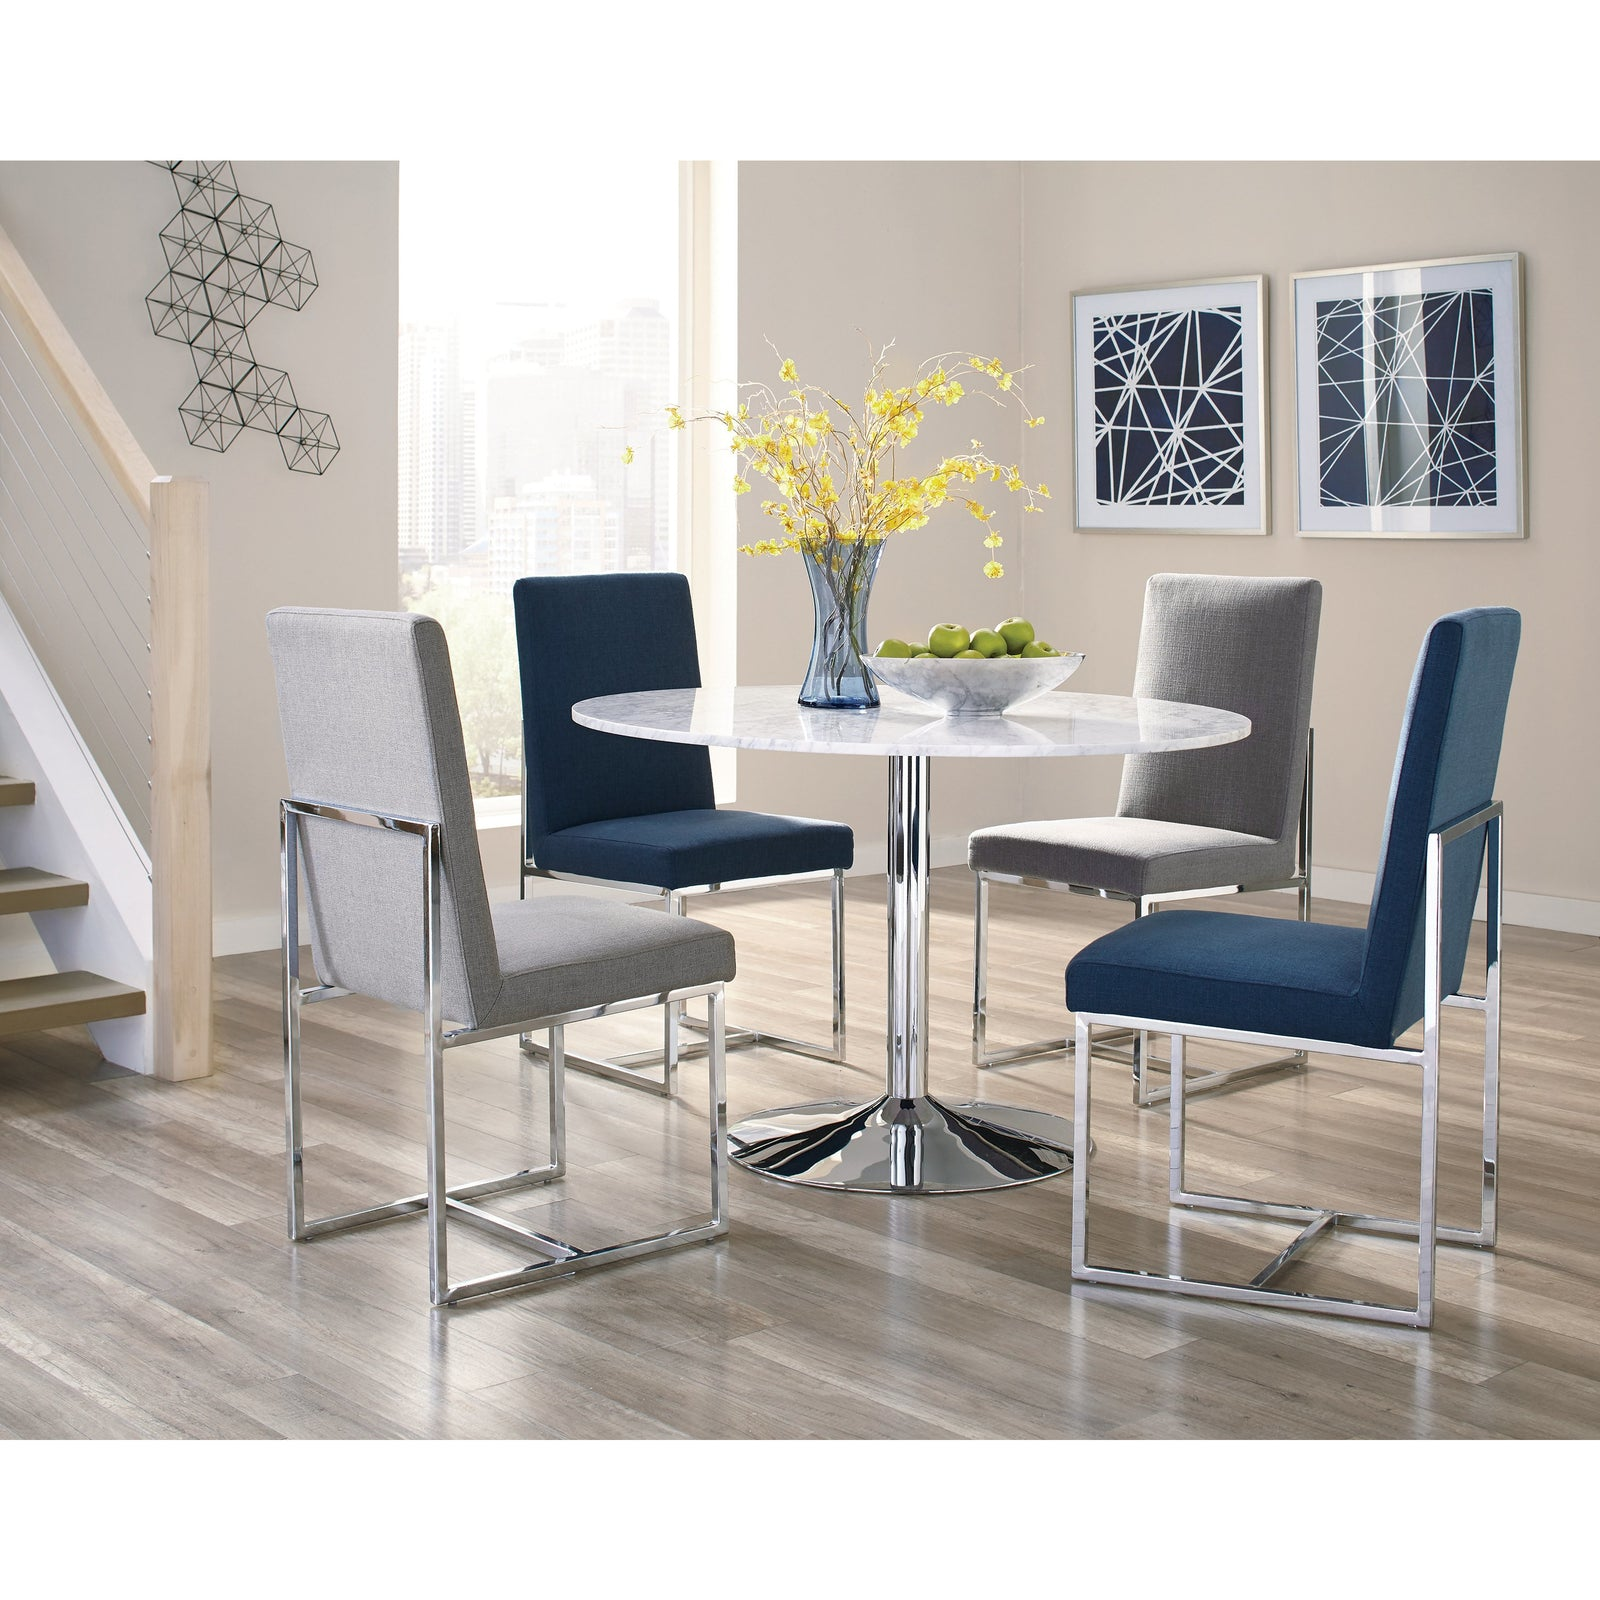 Coaster 107143 | Geometric Frame Upholstered Side Chairs Set Of 2